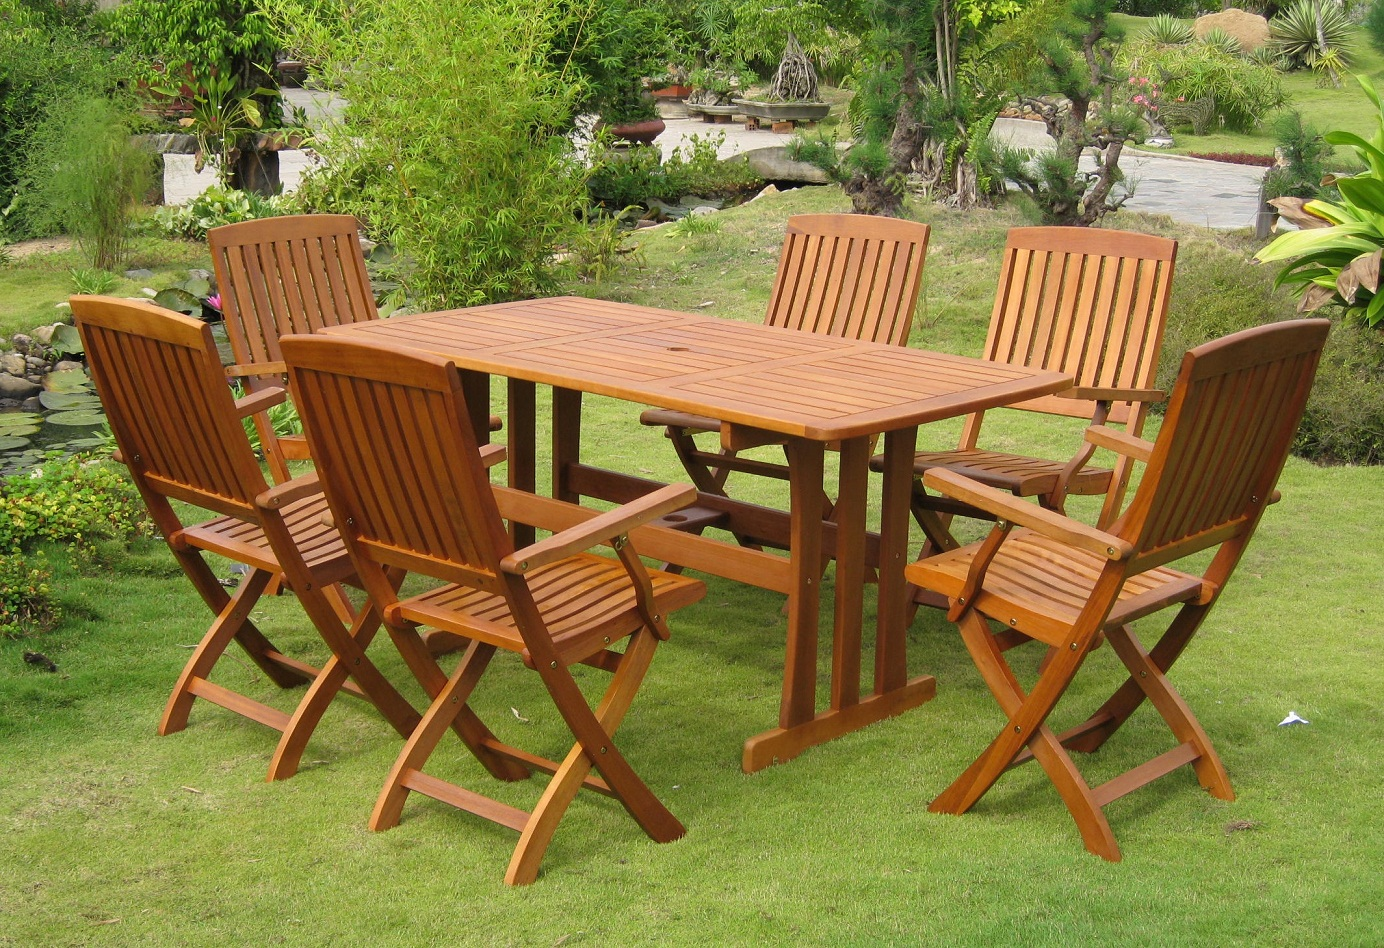 garden chairs and table wooden sun